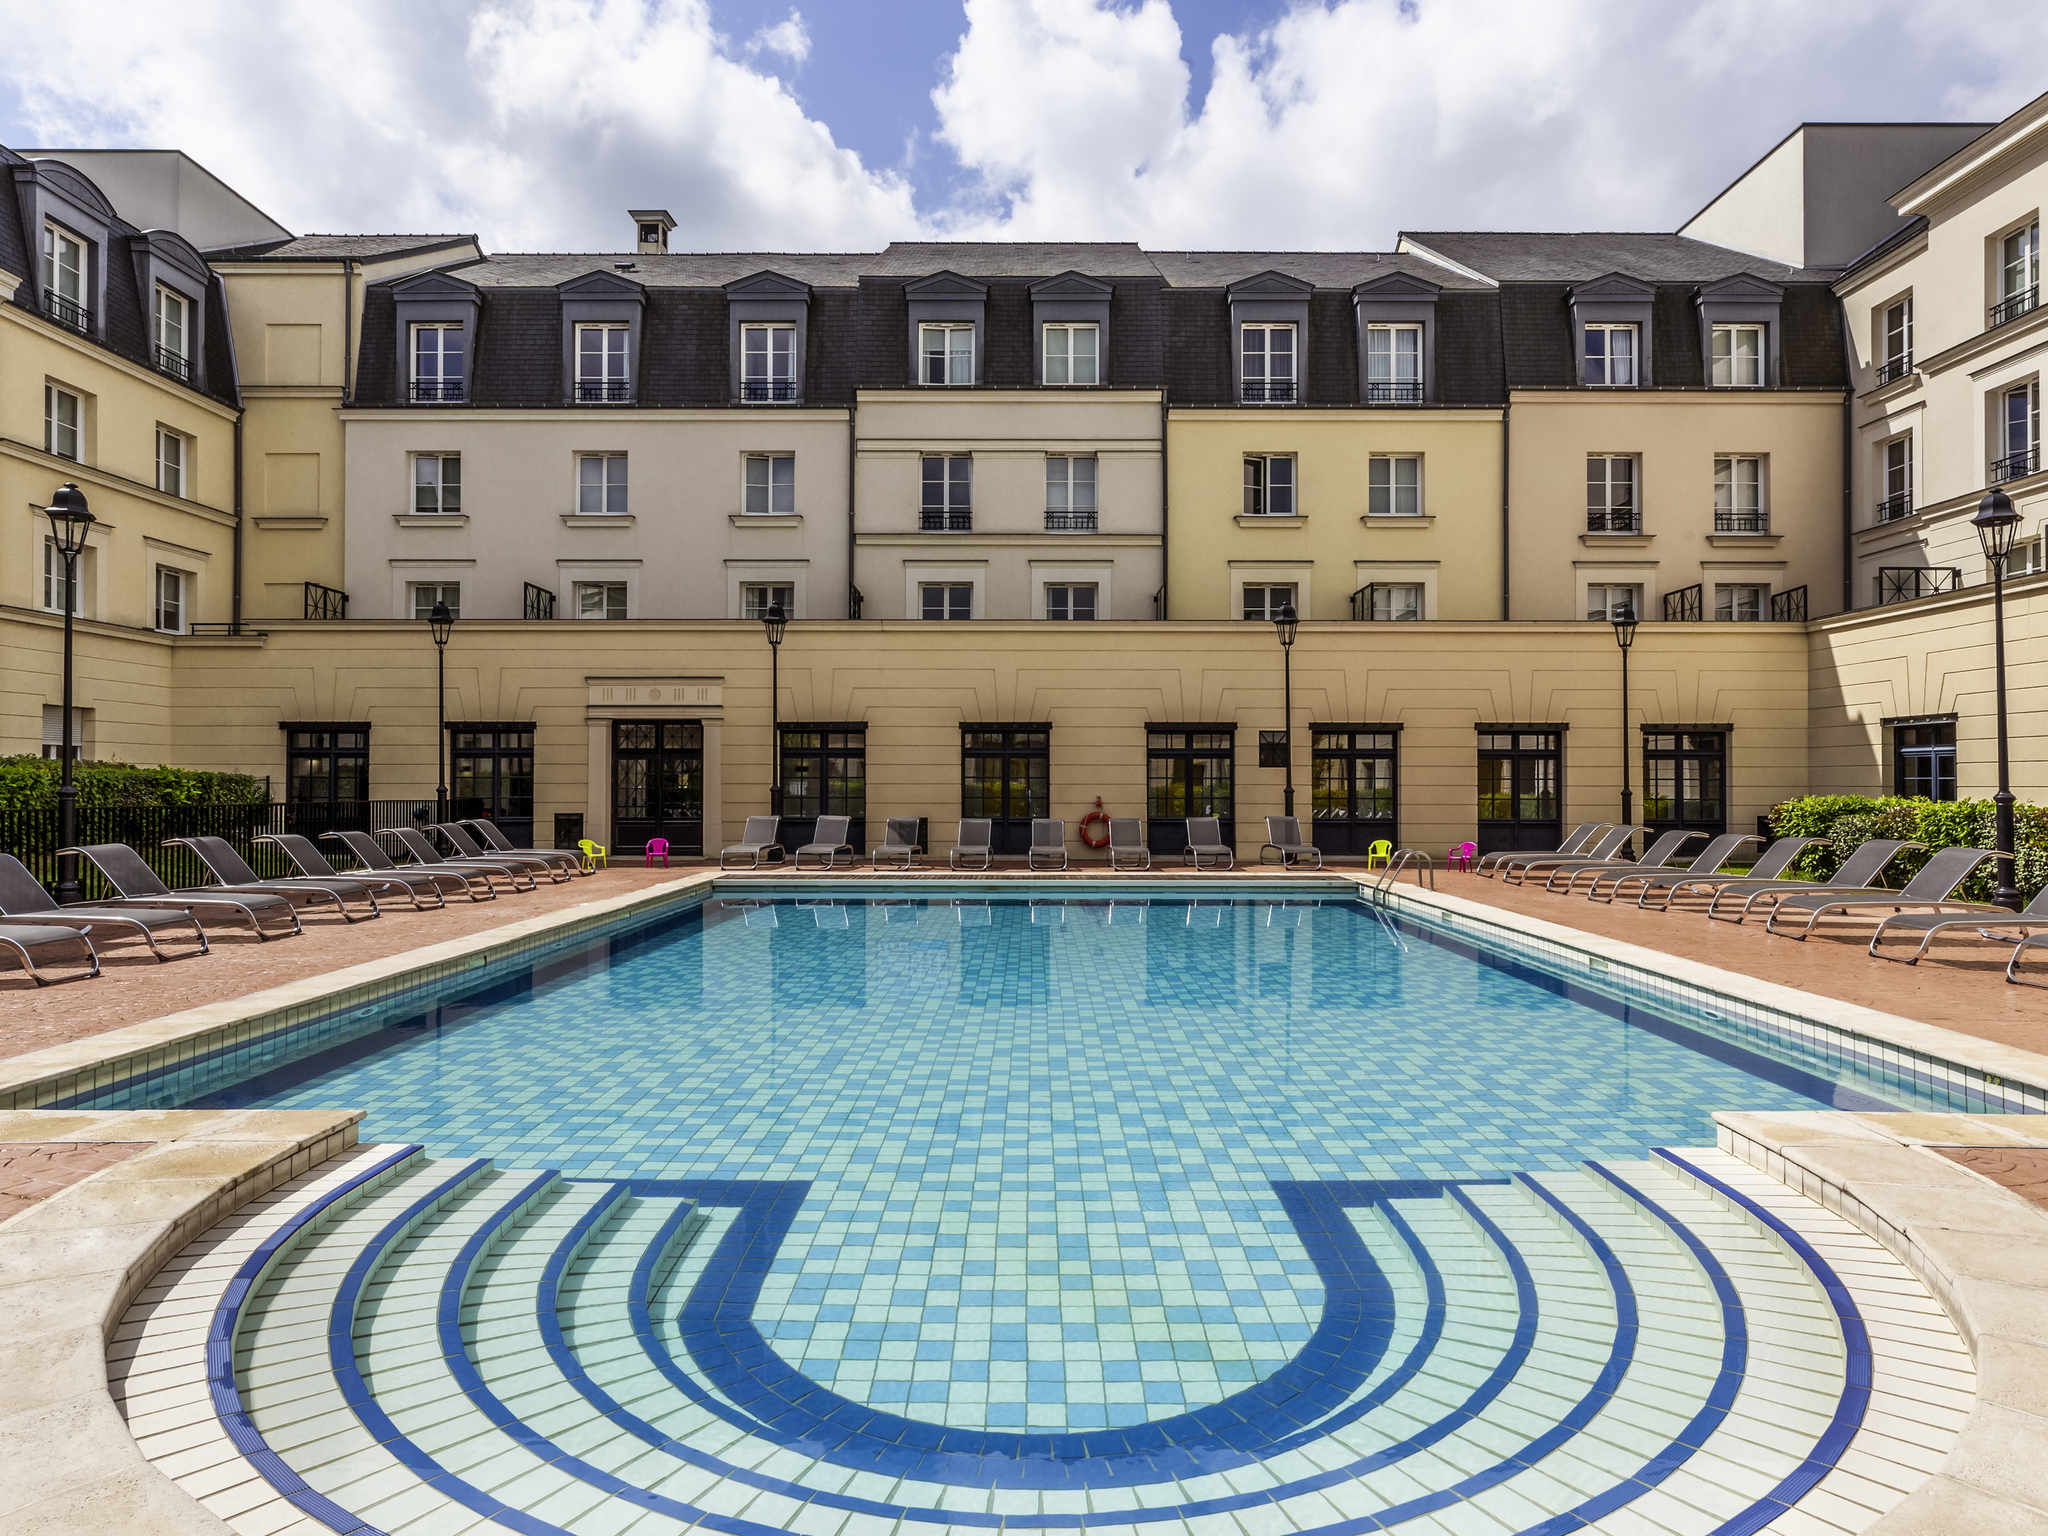 Hotell – Hipark by Adagio Serris - Val d'Europe